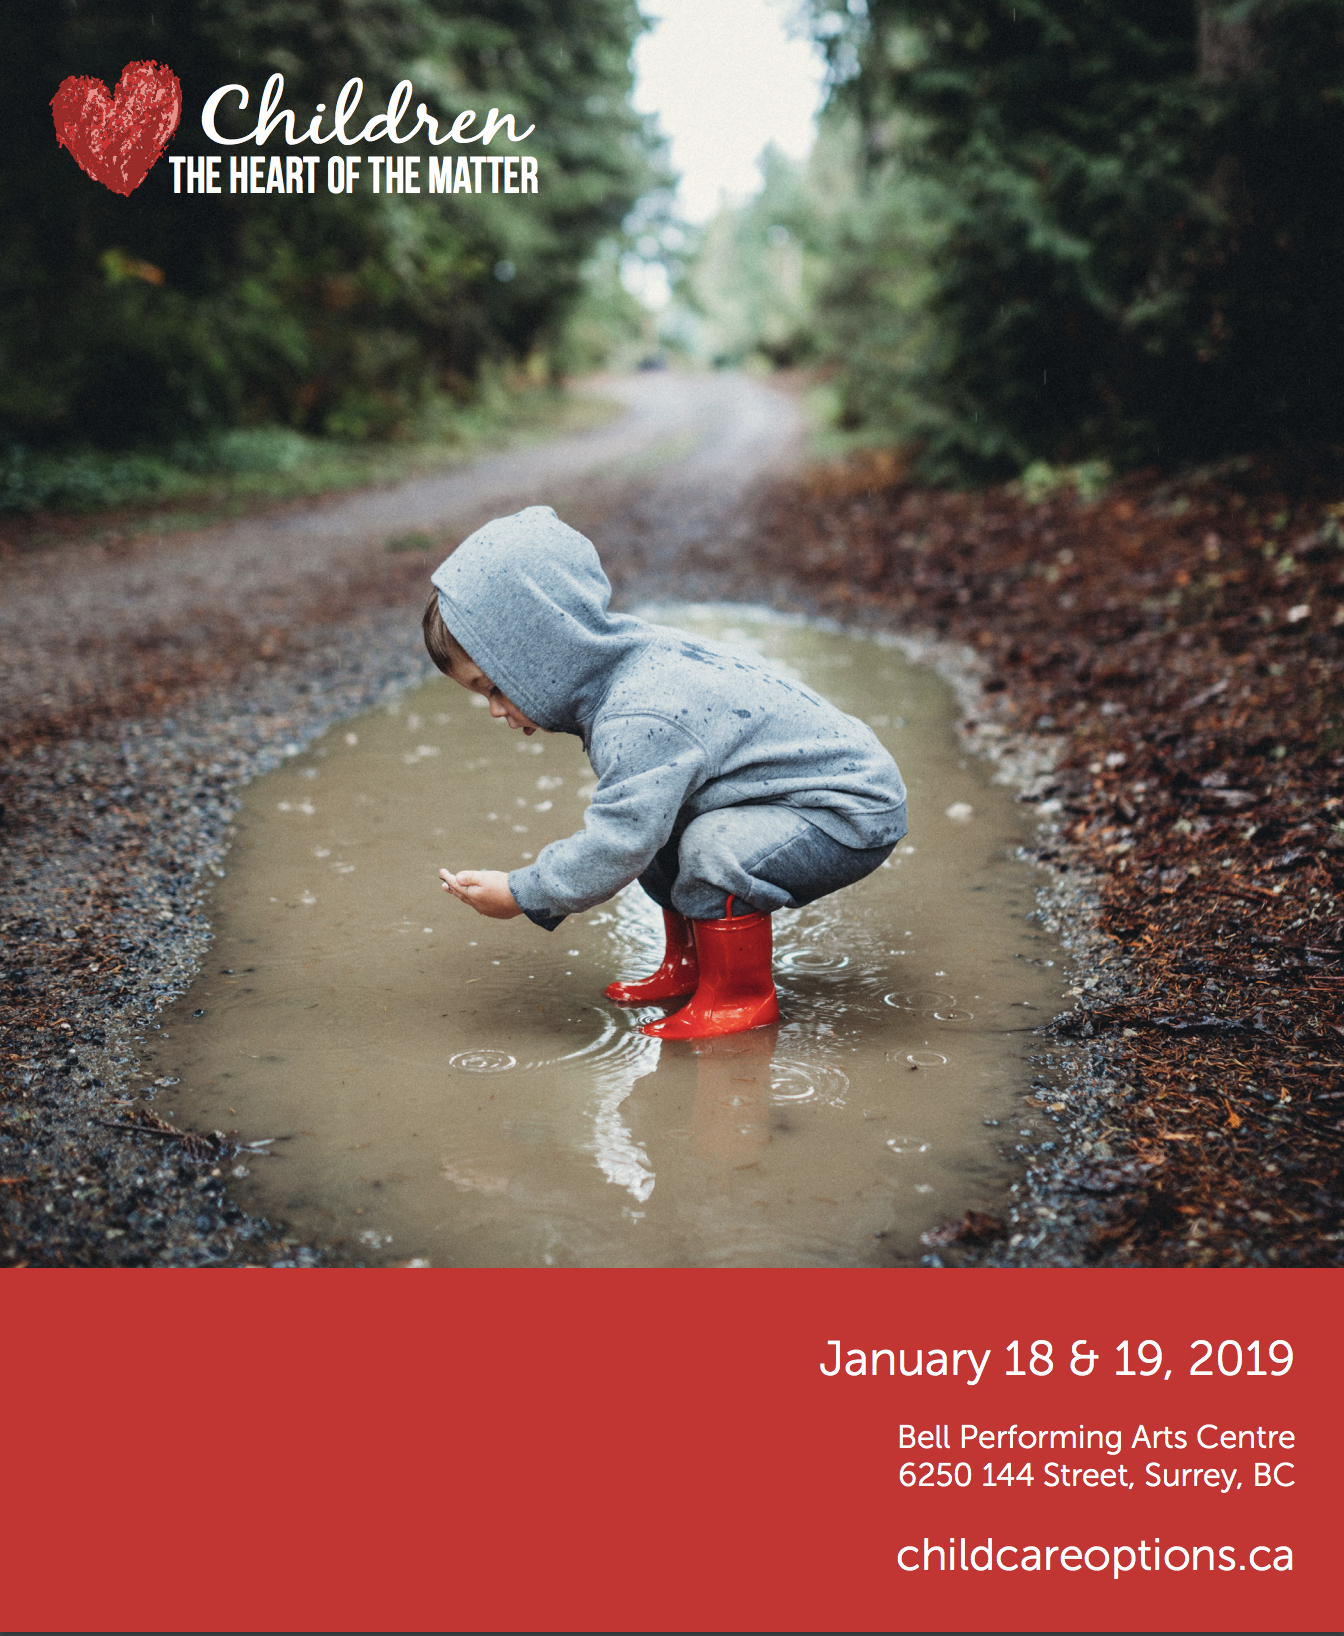 Children the Heart of the Matter 2019 Surrey BC